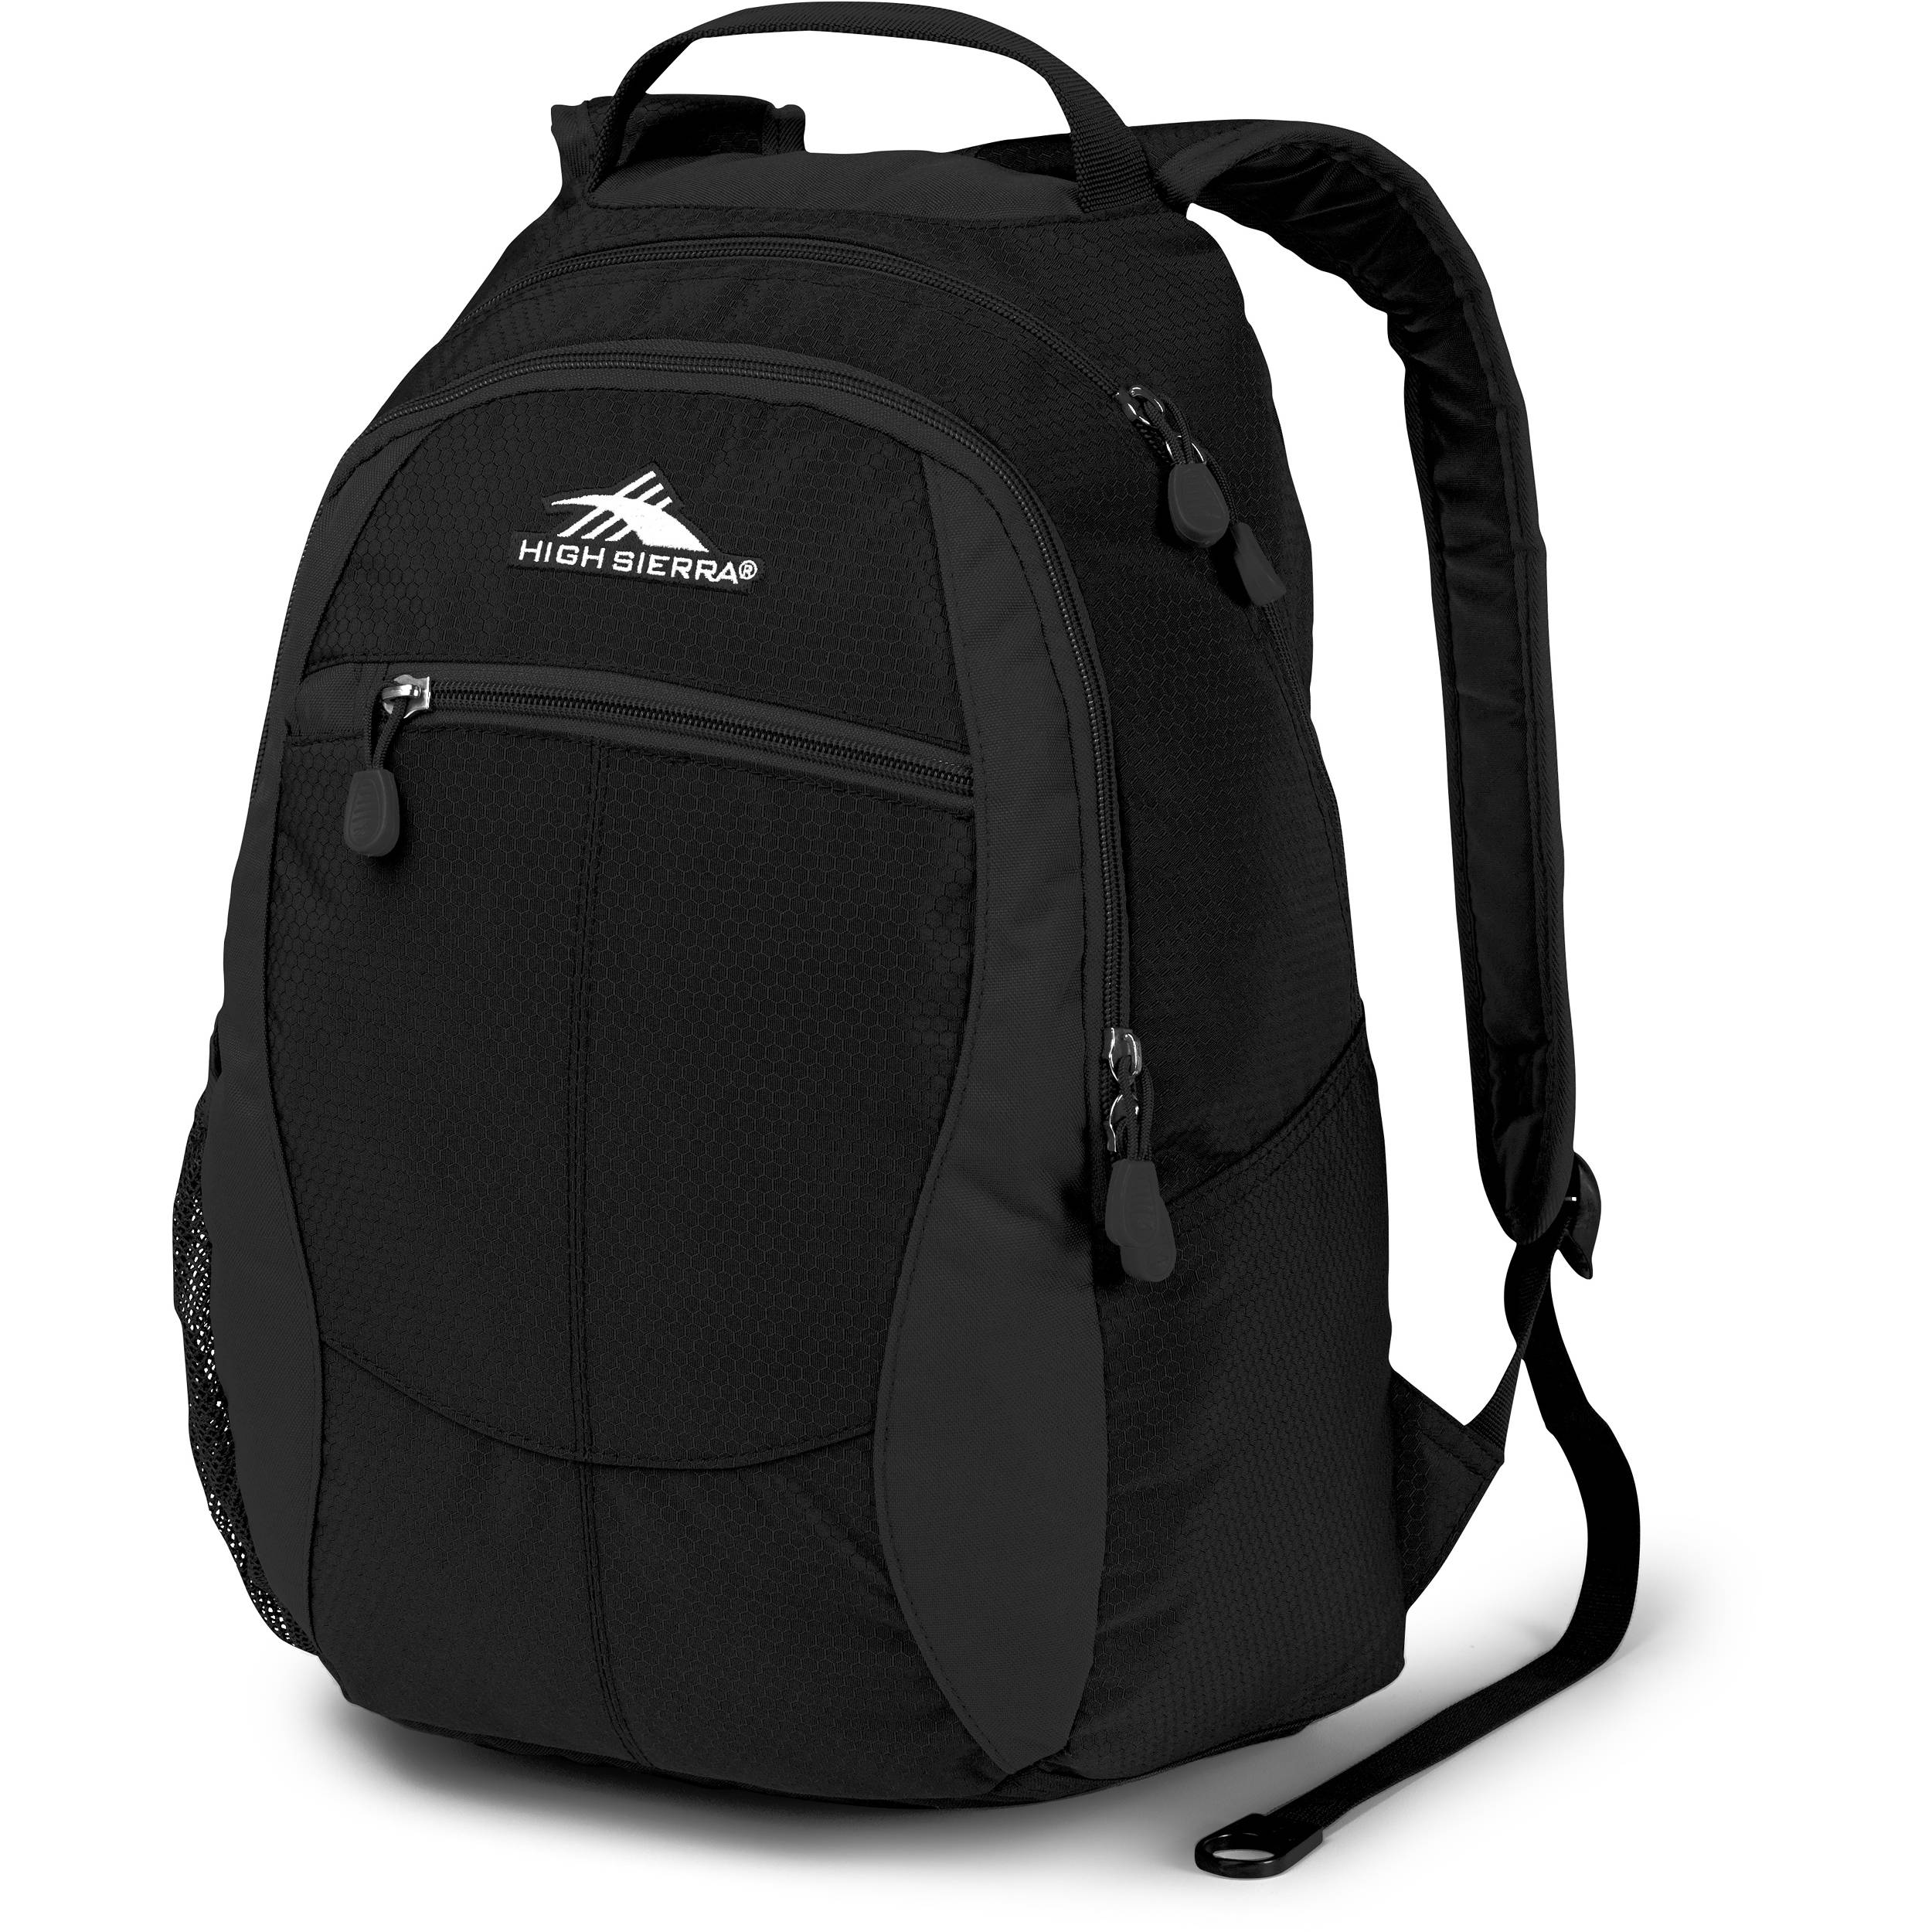 328ecaf74 High Sierra Curve Backpack (Black) 53632-3054 B&H Photo Video